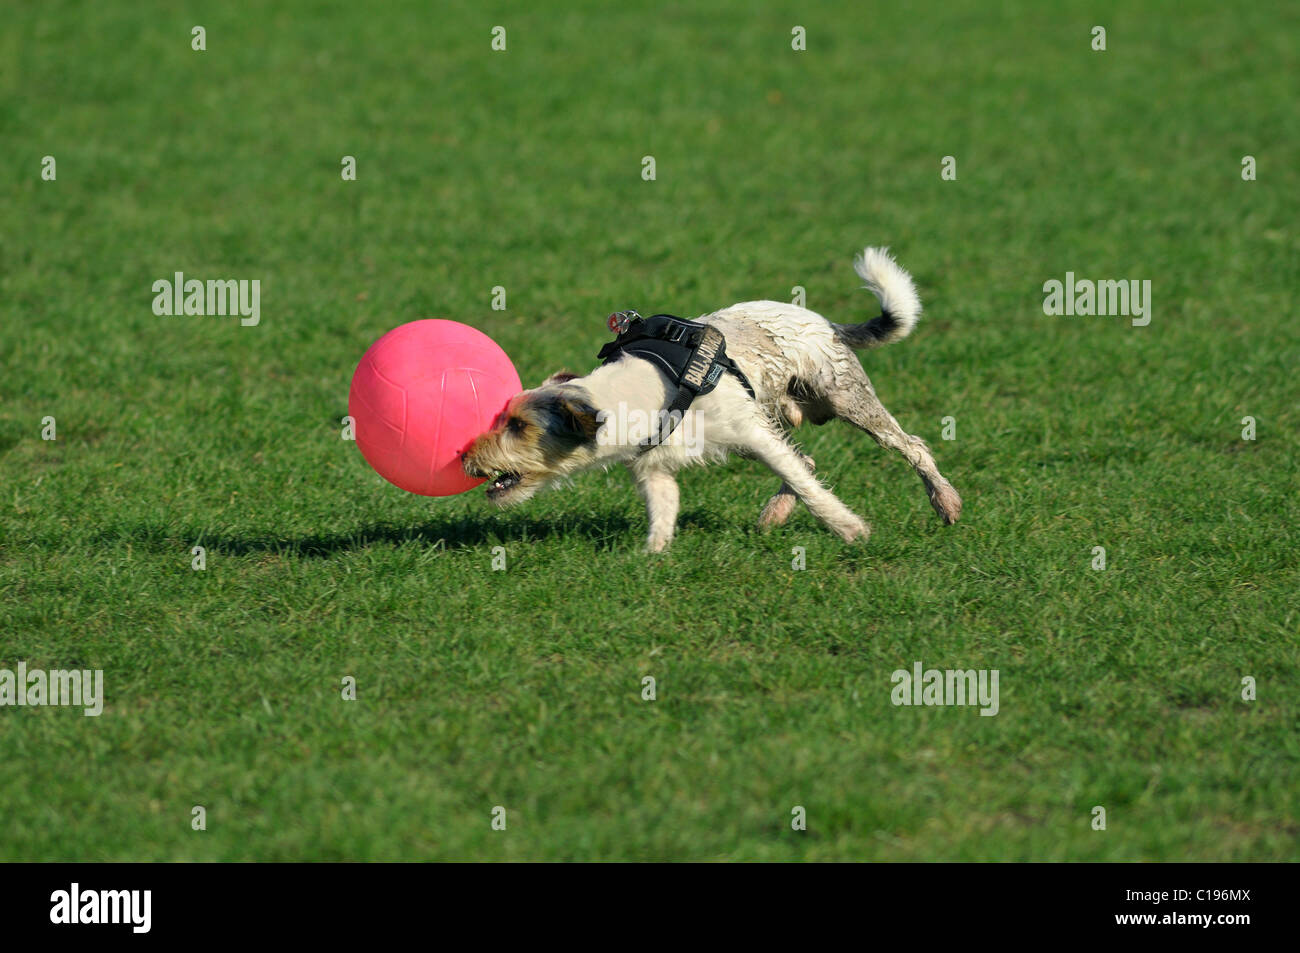 Terrier directing his pink ball to the right Stock Photo